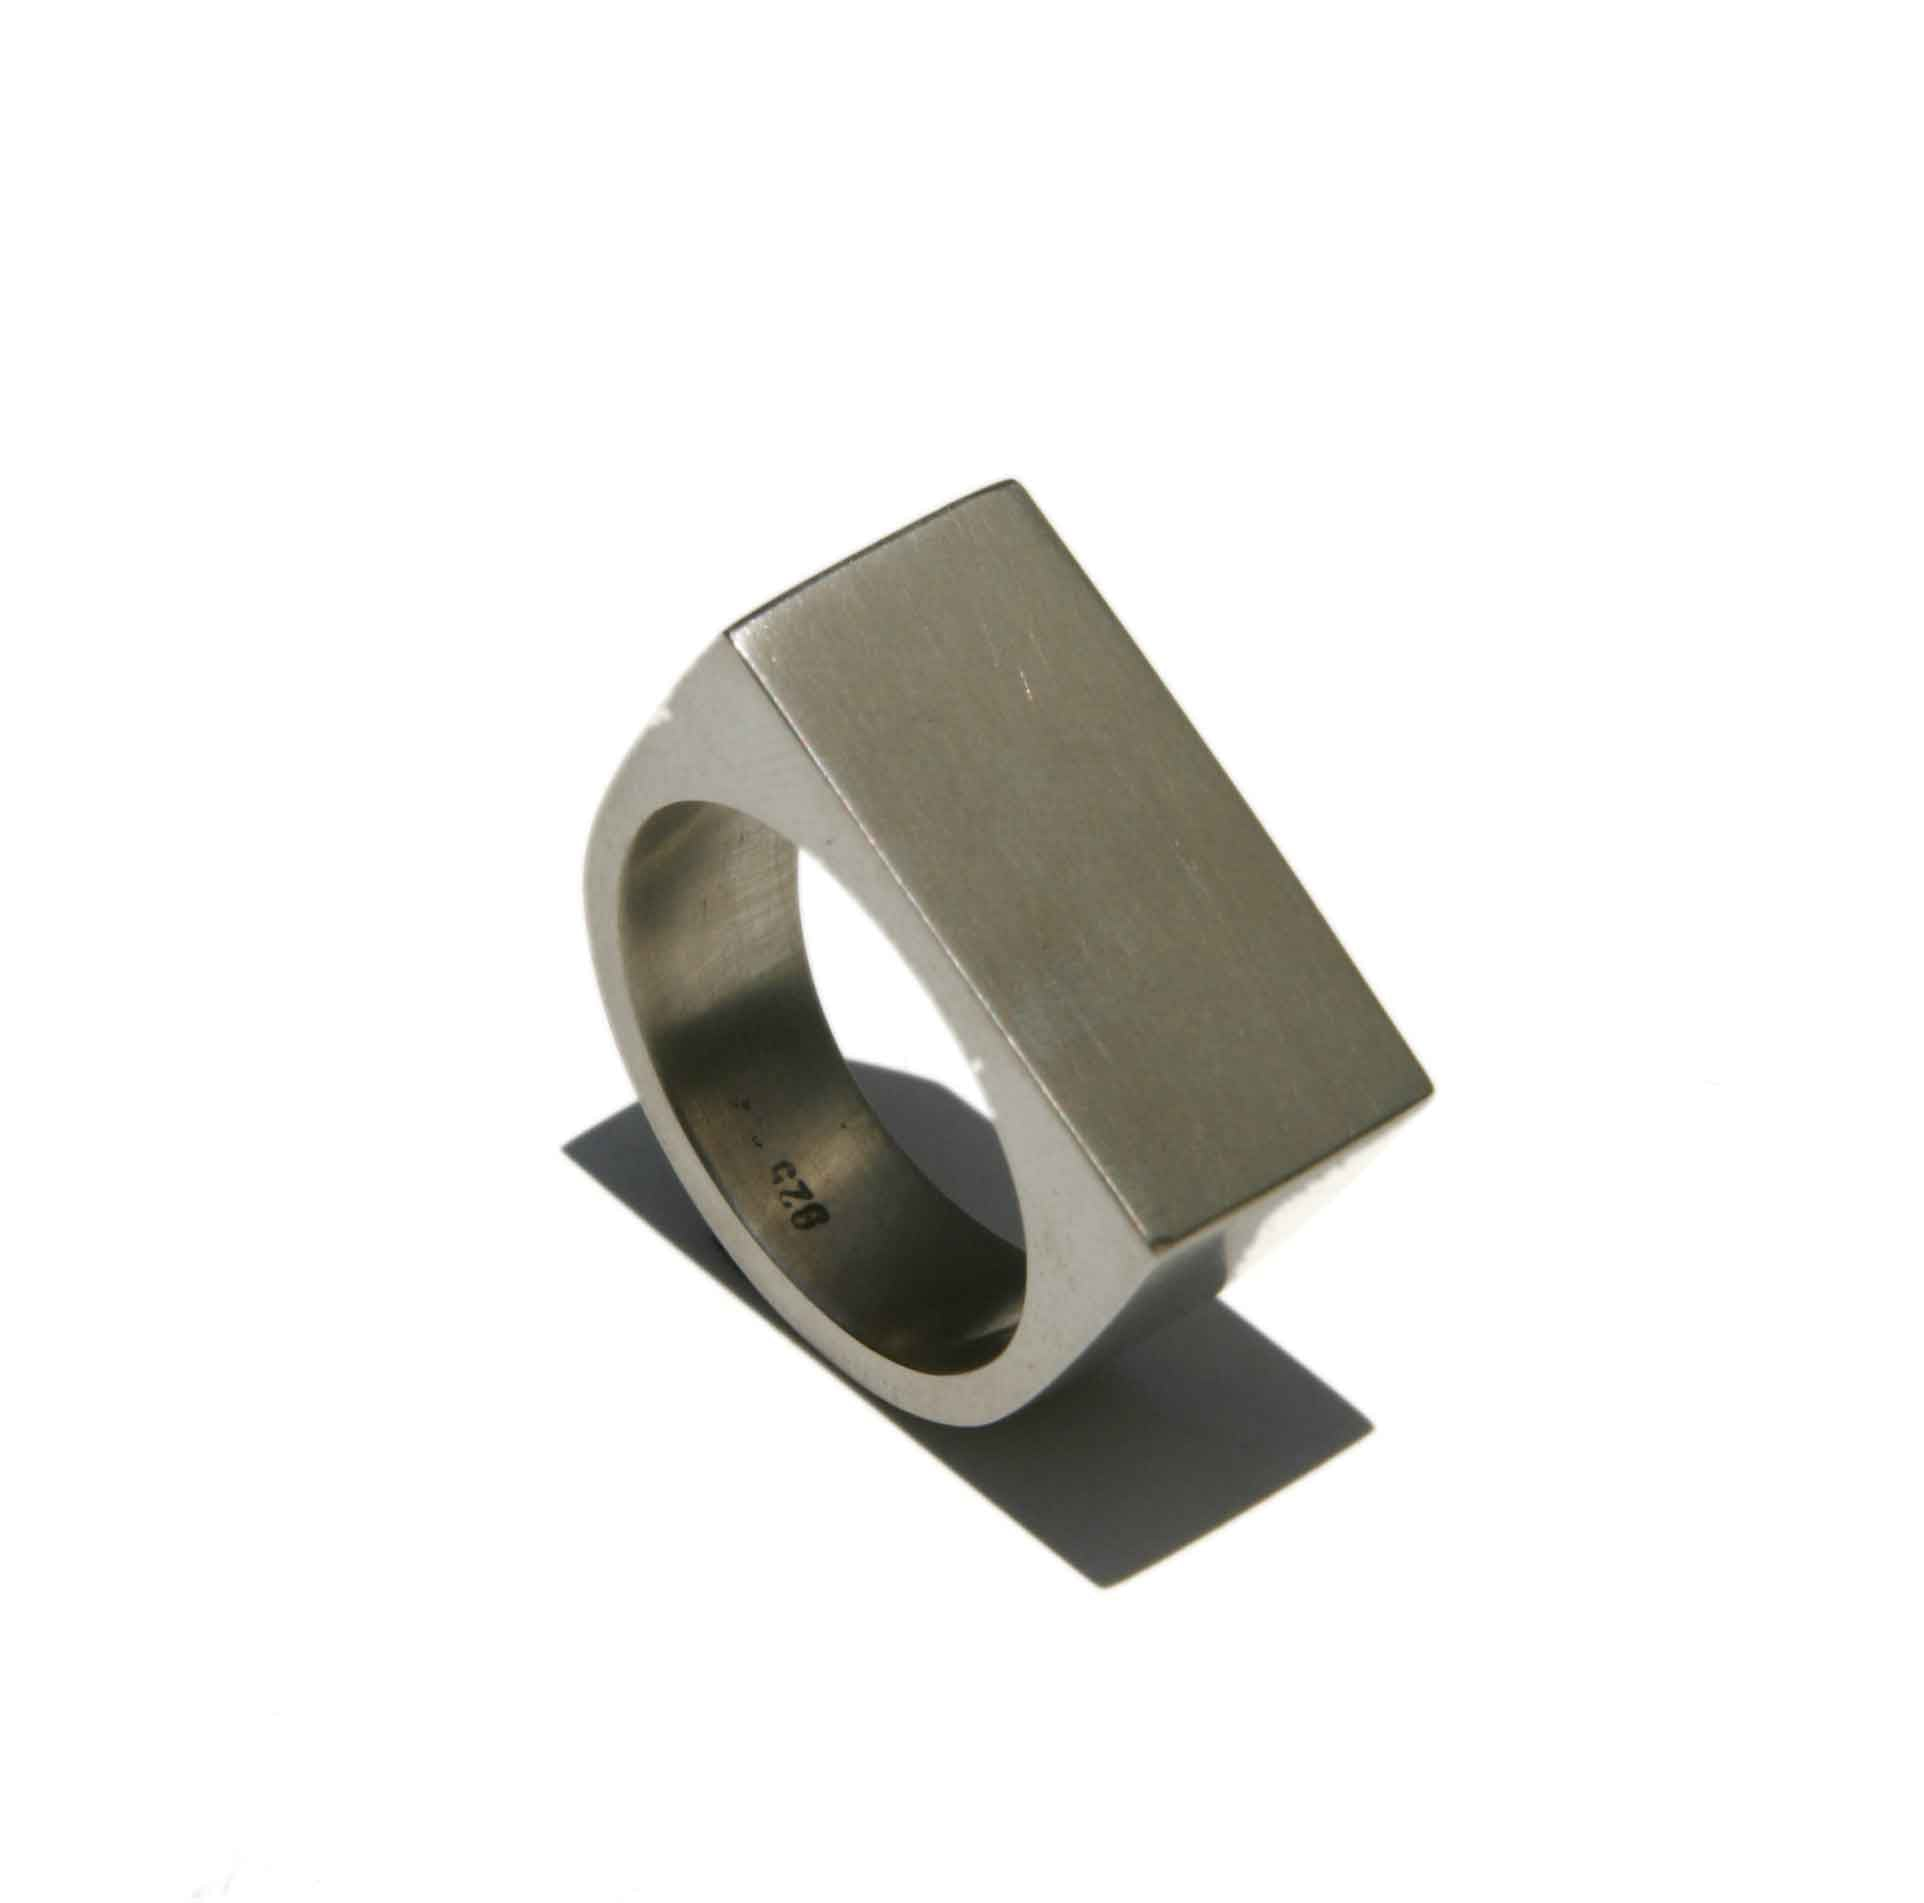 'Cubist' solid silver ring